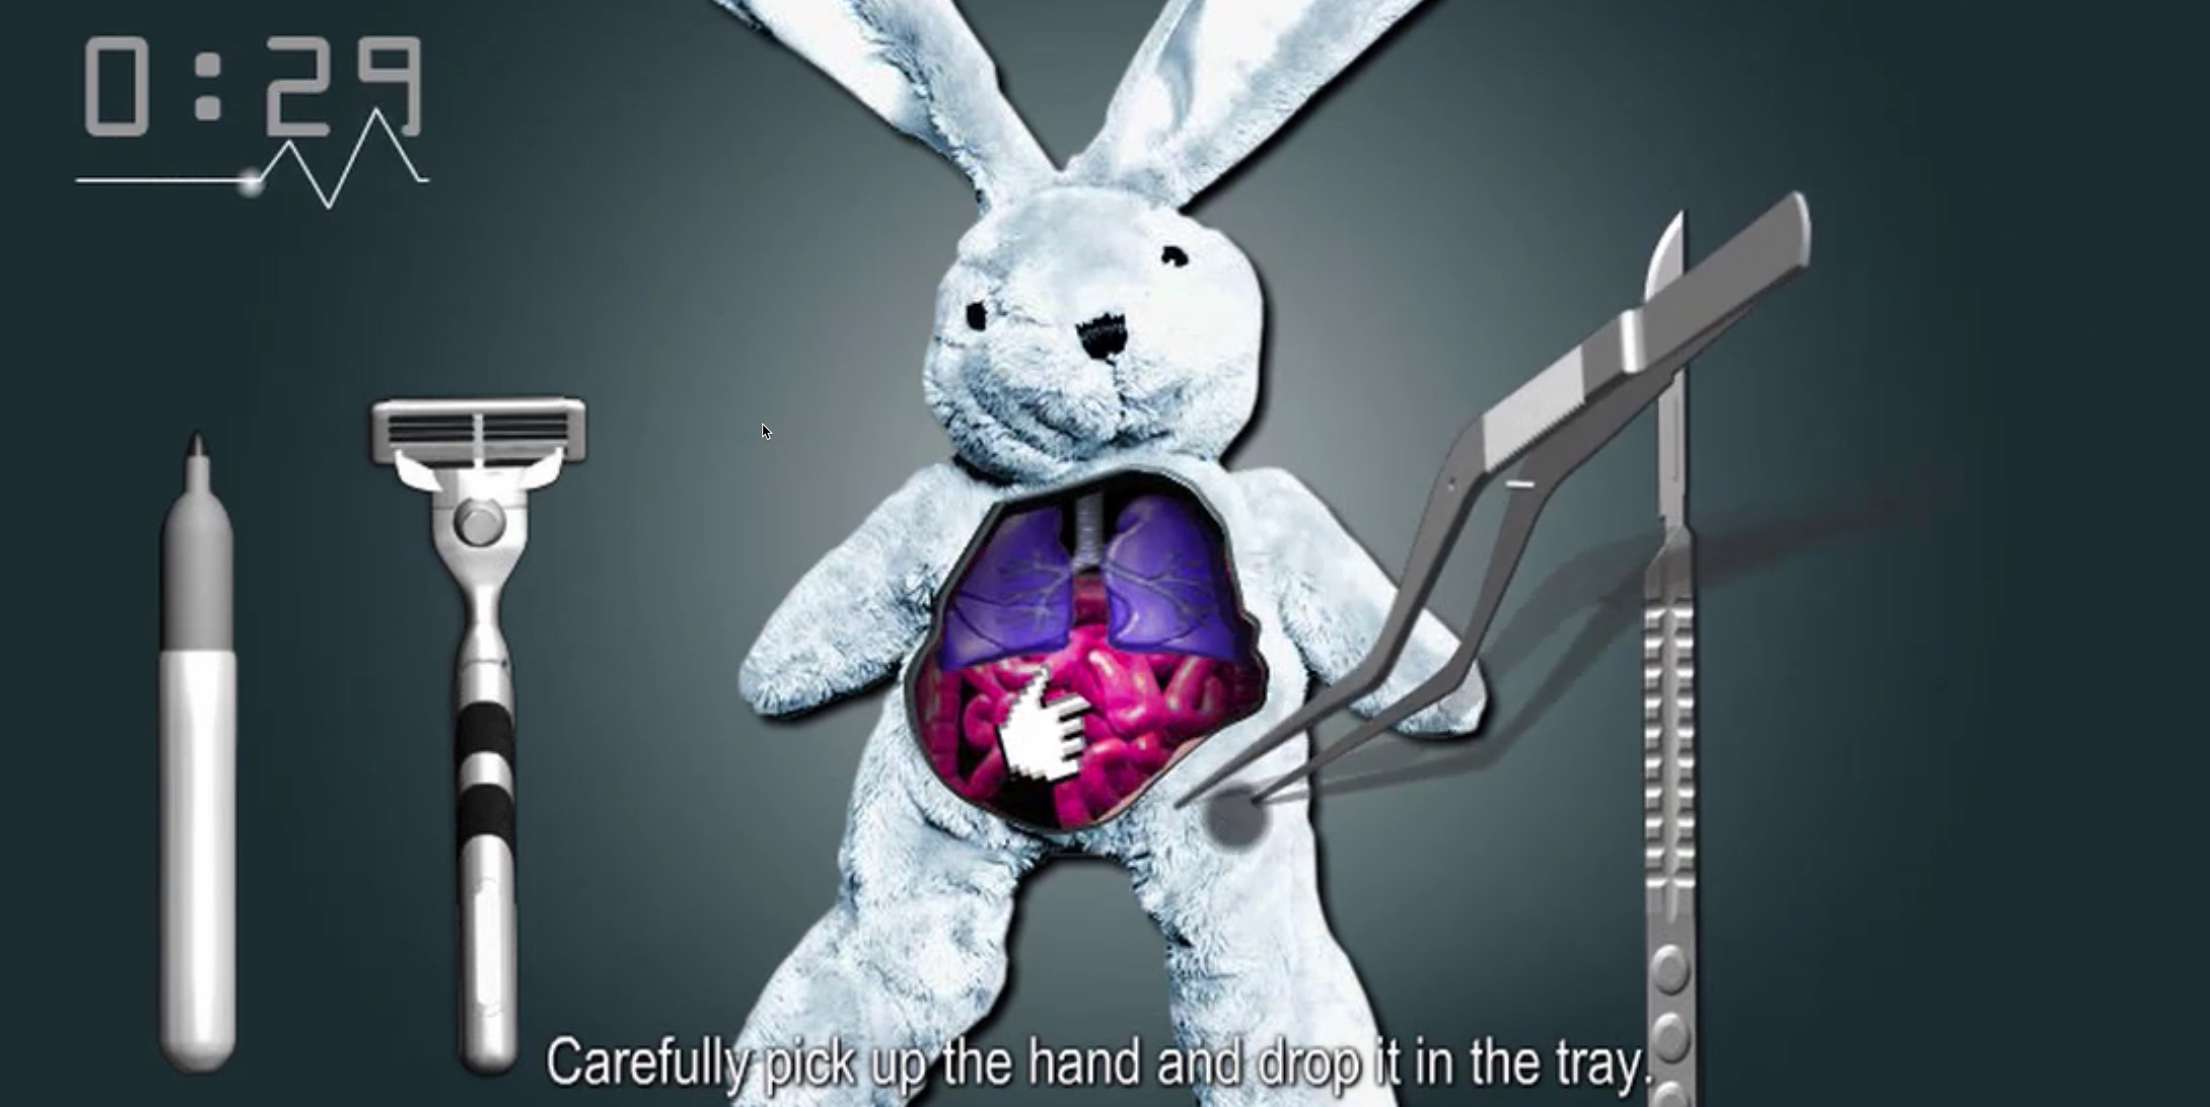 The virtual surgery game for kids, Cure the Bunny